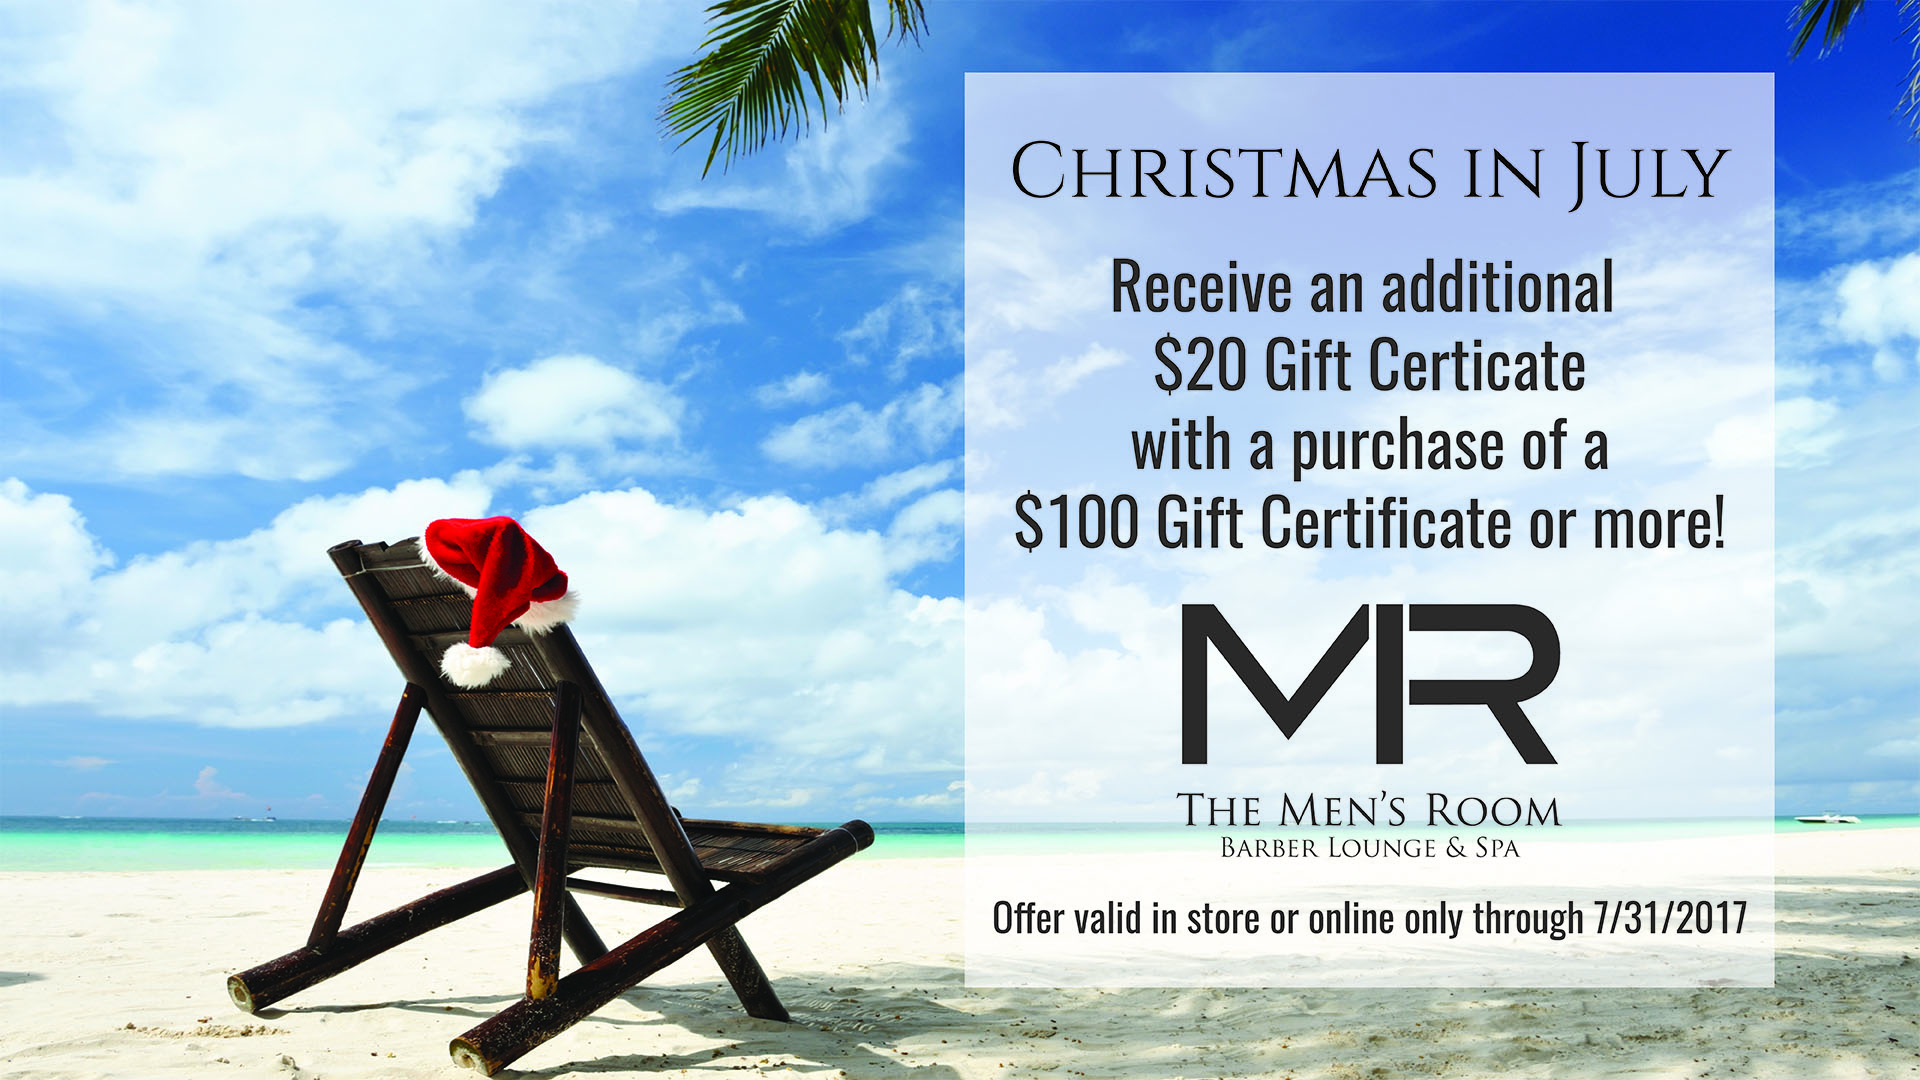 The Men's Room Barber, Lounge, & Spa Christmas in July Gift Card Special